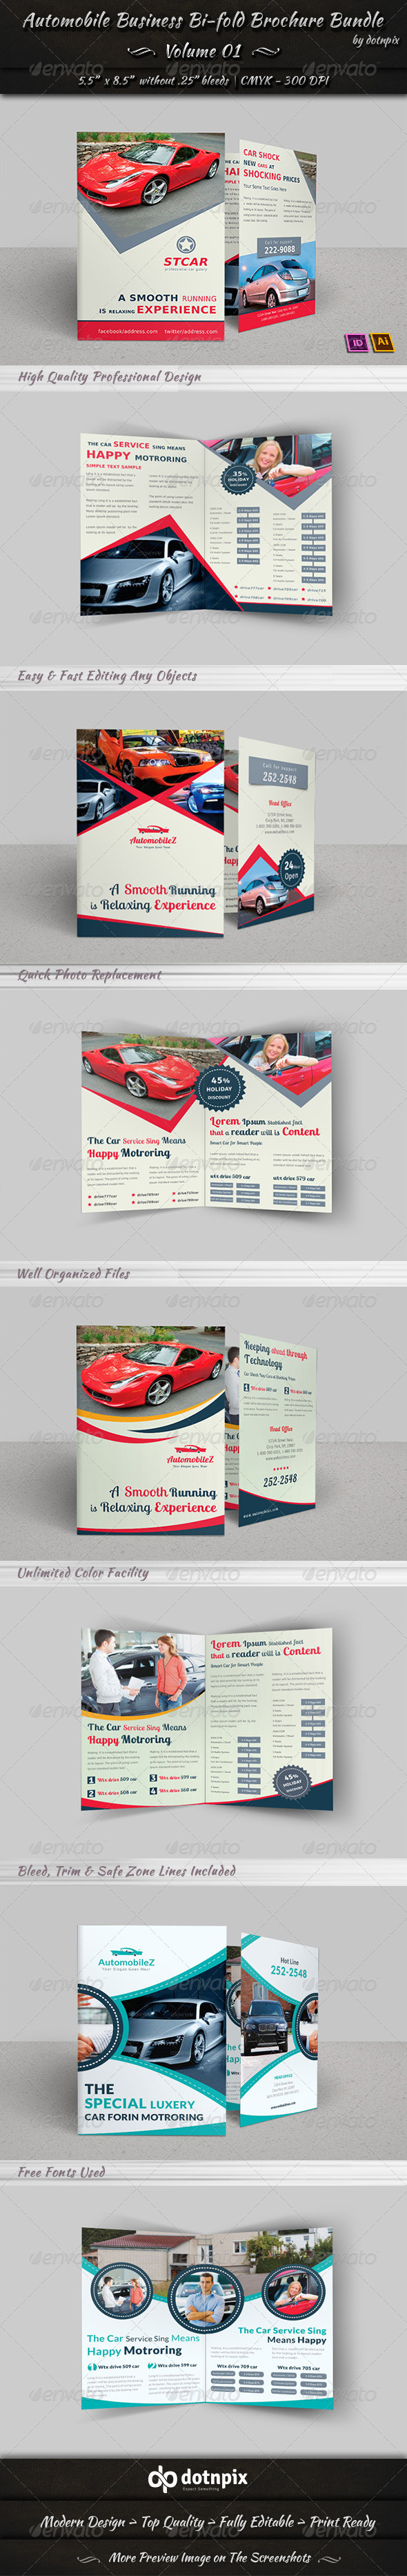 GraphicRiver Automobile Business Bi-fold Brochure Bundle V 1 7097235